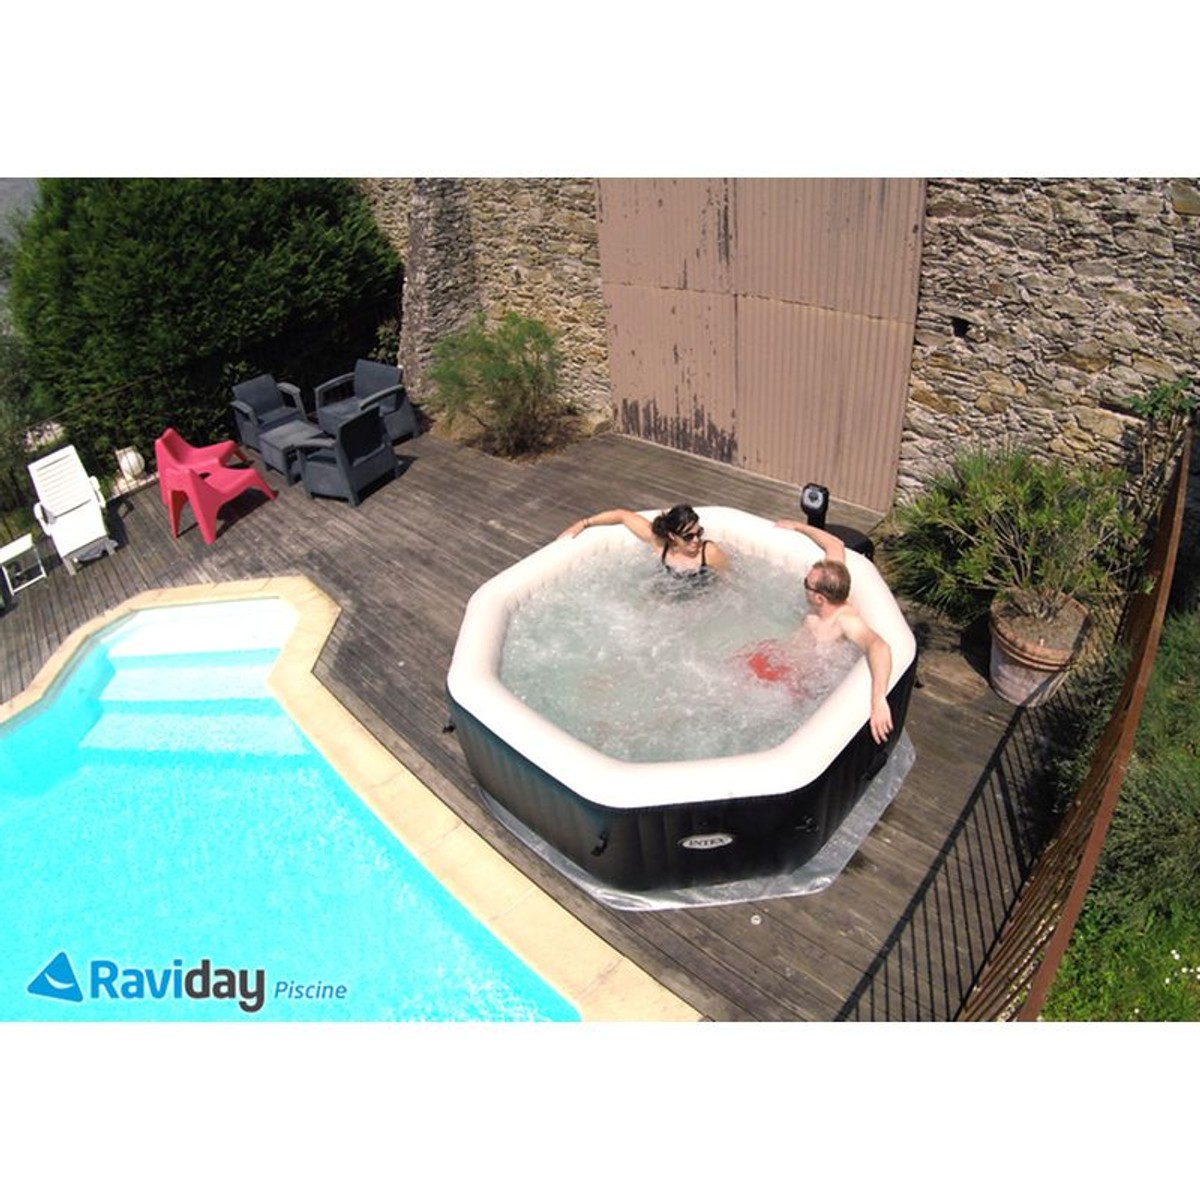 Spa Gonflable Purespa Octogonal Bulles Jets 4 Places Intex Taille Tu Spa Intex Spa Jacuzzi